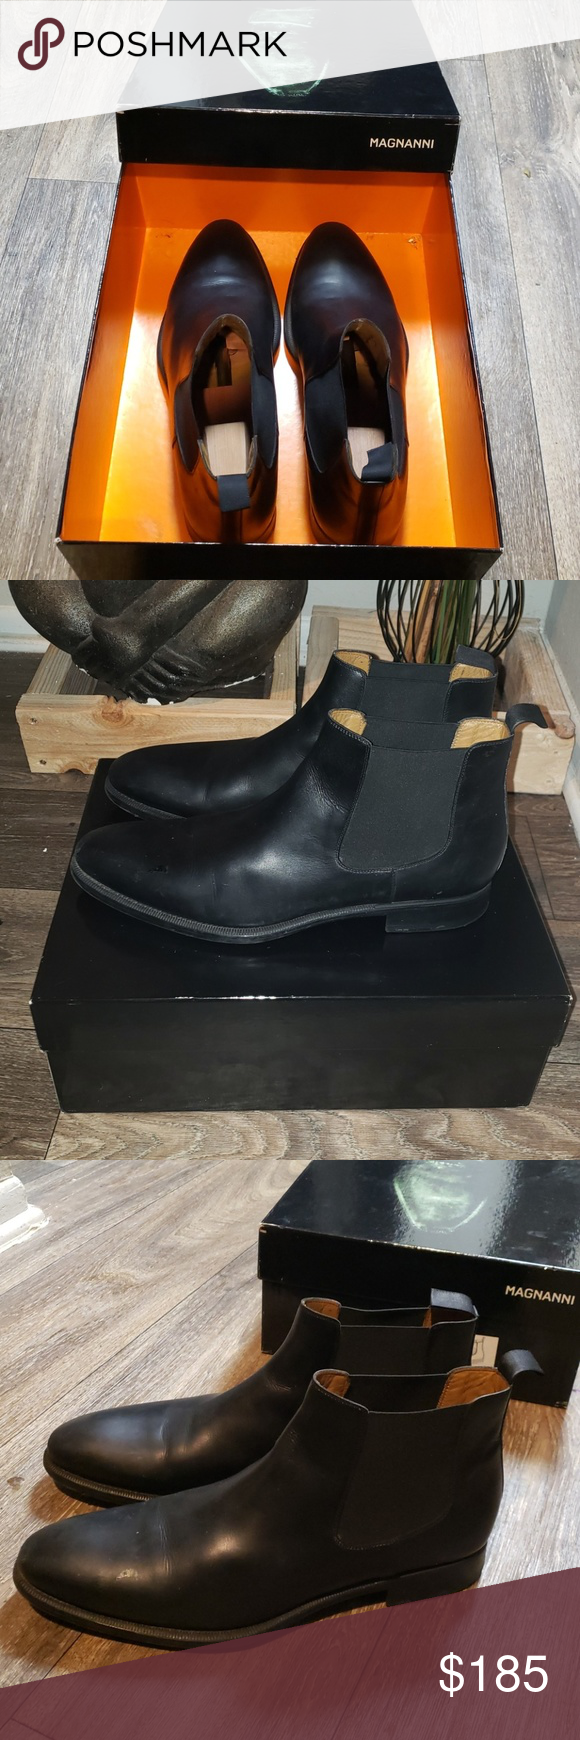 Magnanni foster leather Chelsea boot